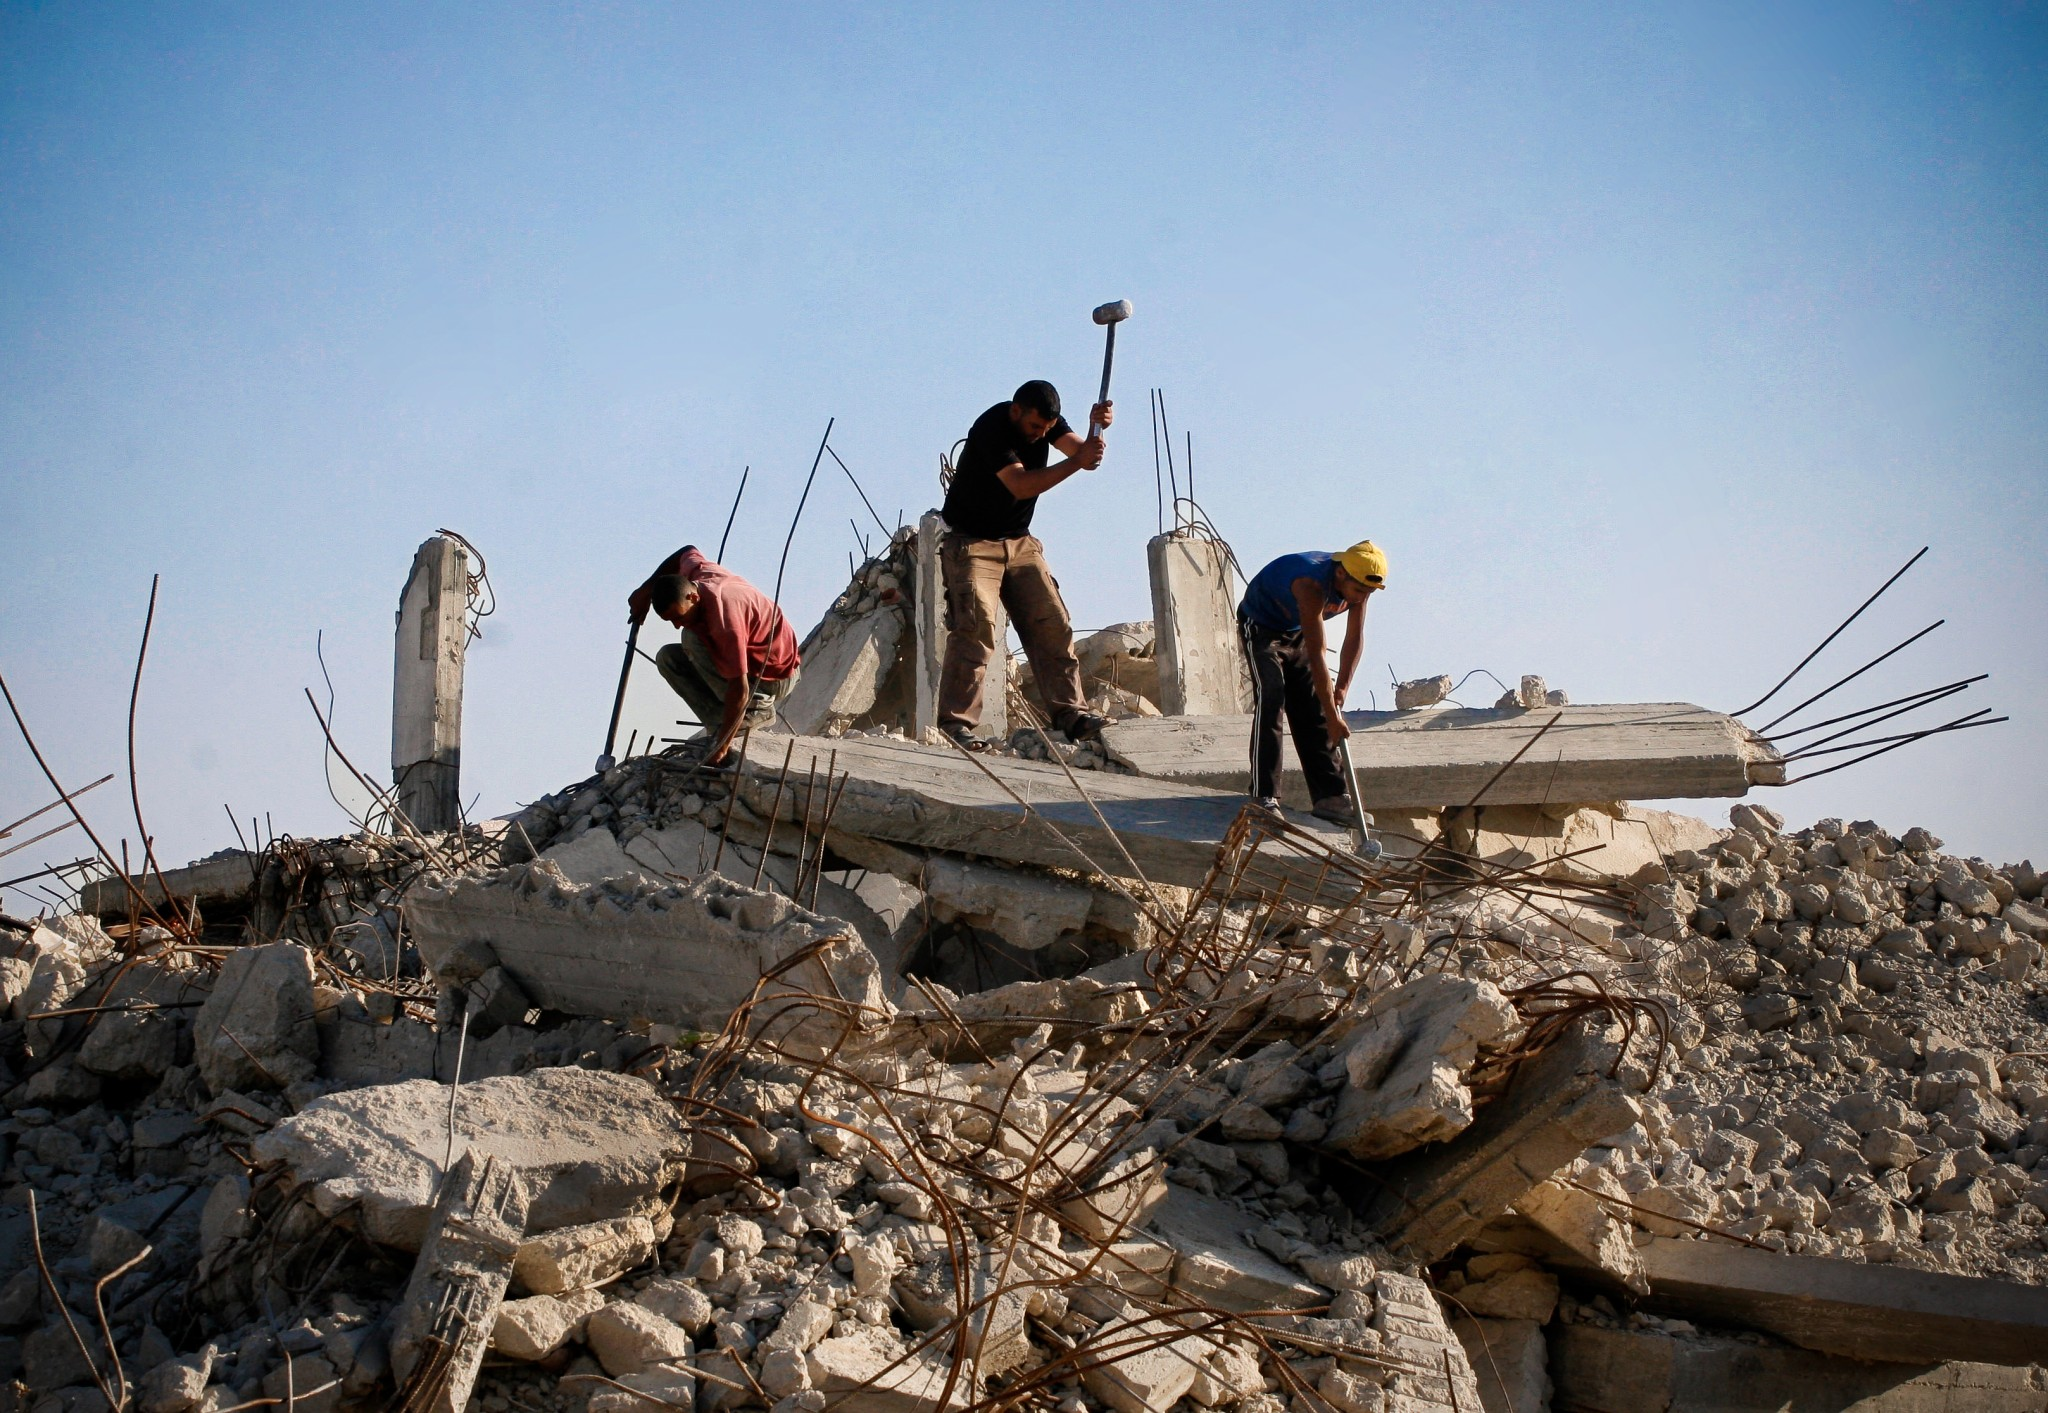 Construction workers in the Gaza Strip. Photo by Eman Mohammed